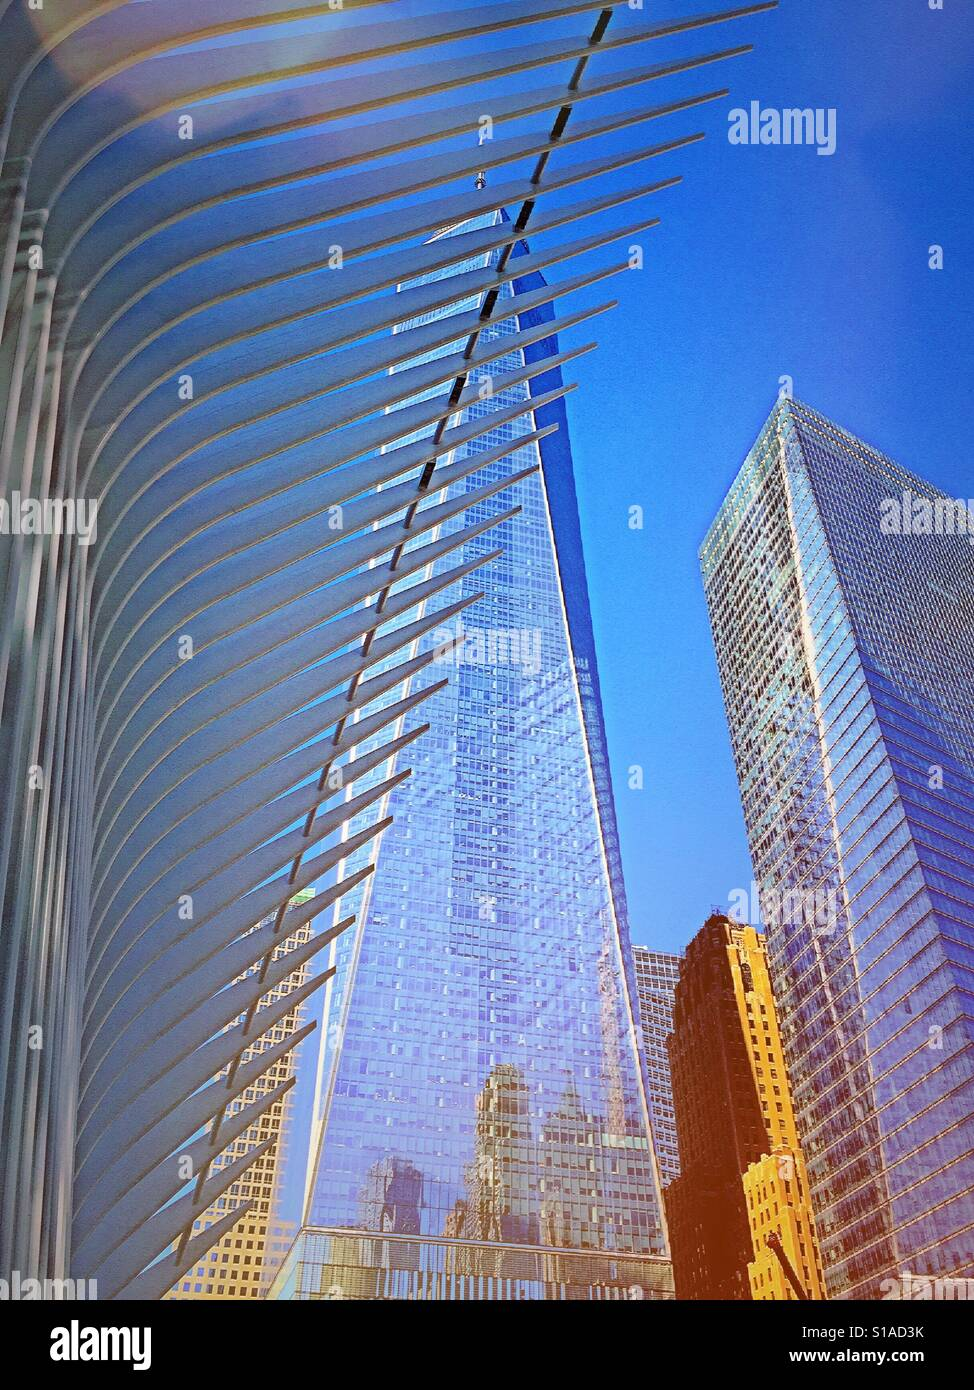 7 World Trade Center and signs of the path station oculus, NYC, USA - Stock Image